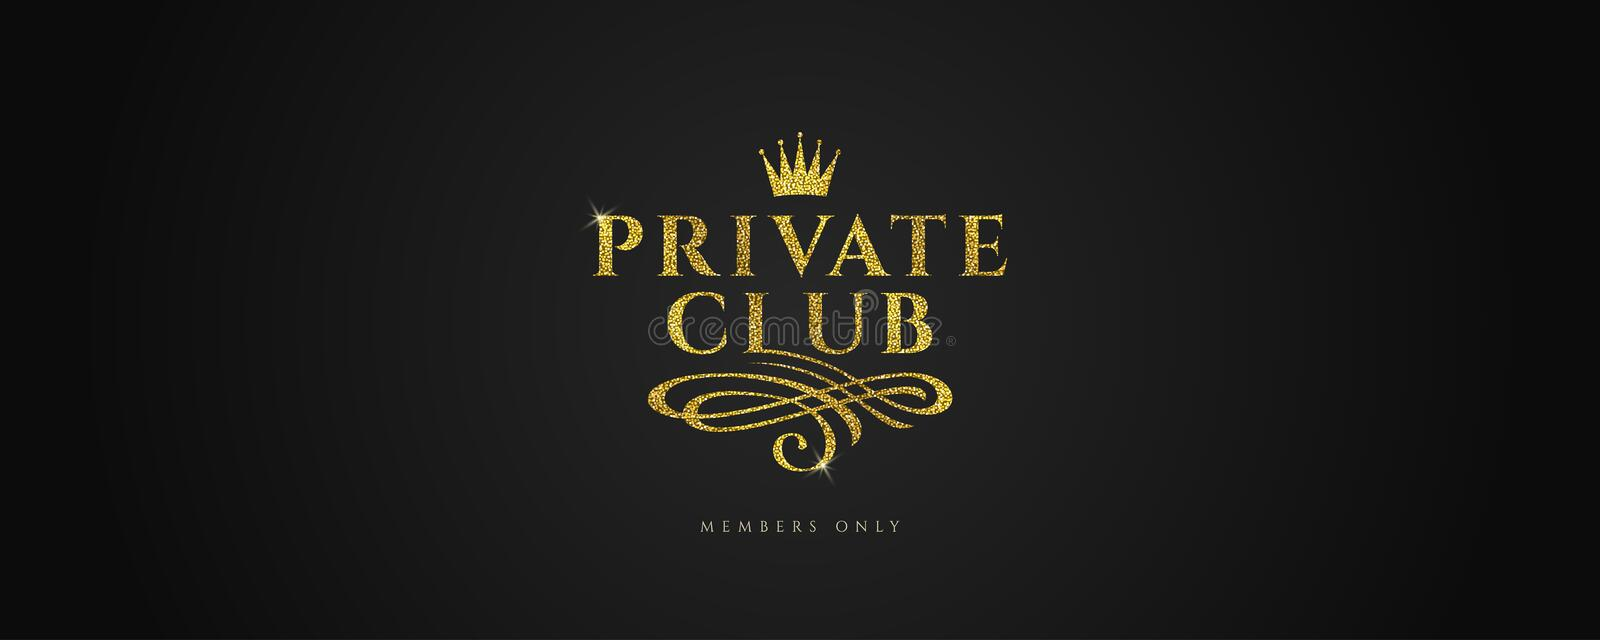 Private club - Glitter gold logo with crown and flourishes element on black background. vector illustration